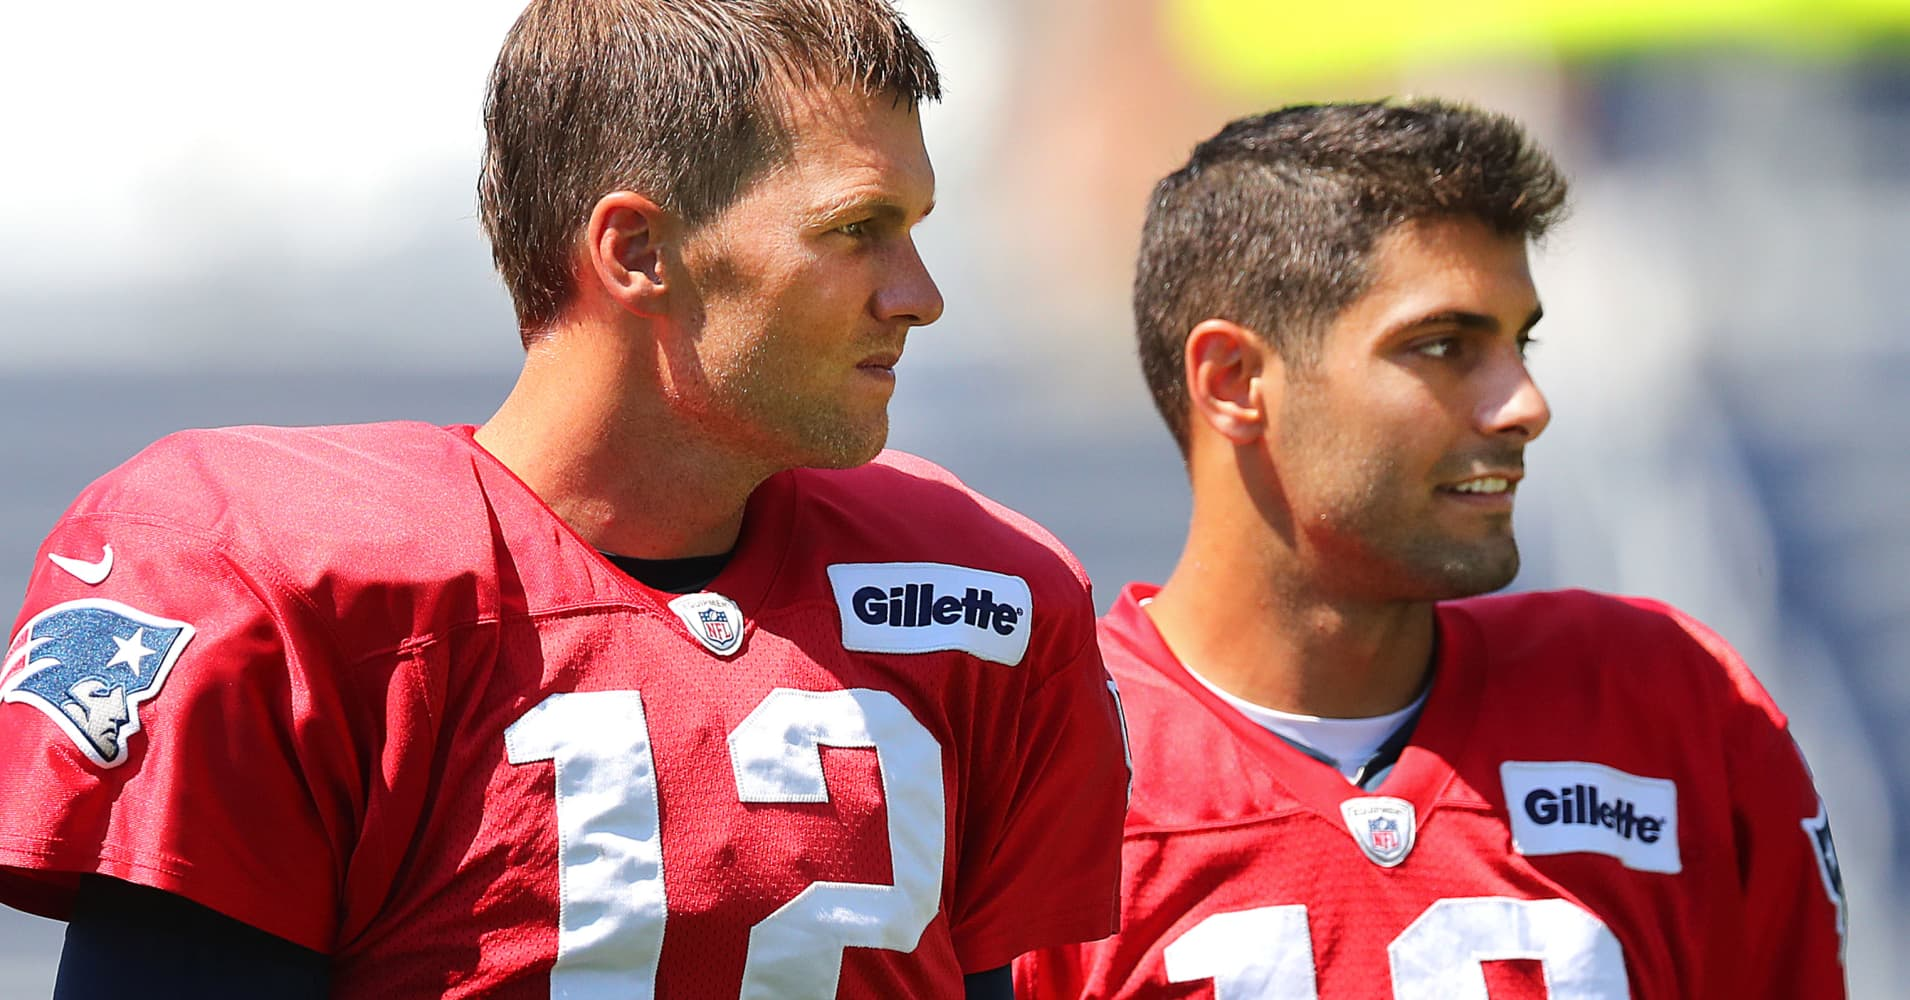 New England Patriots quarterback Tom Brady and his former backup Jimmy Garoppolo